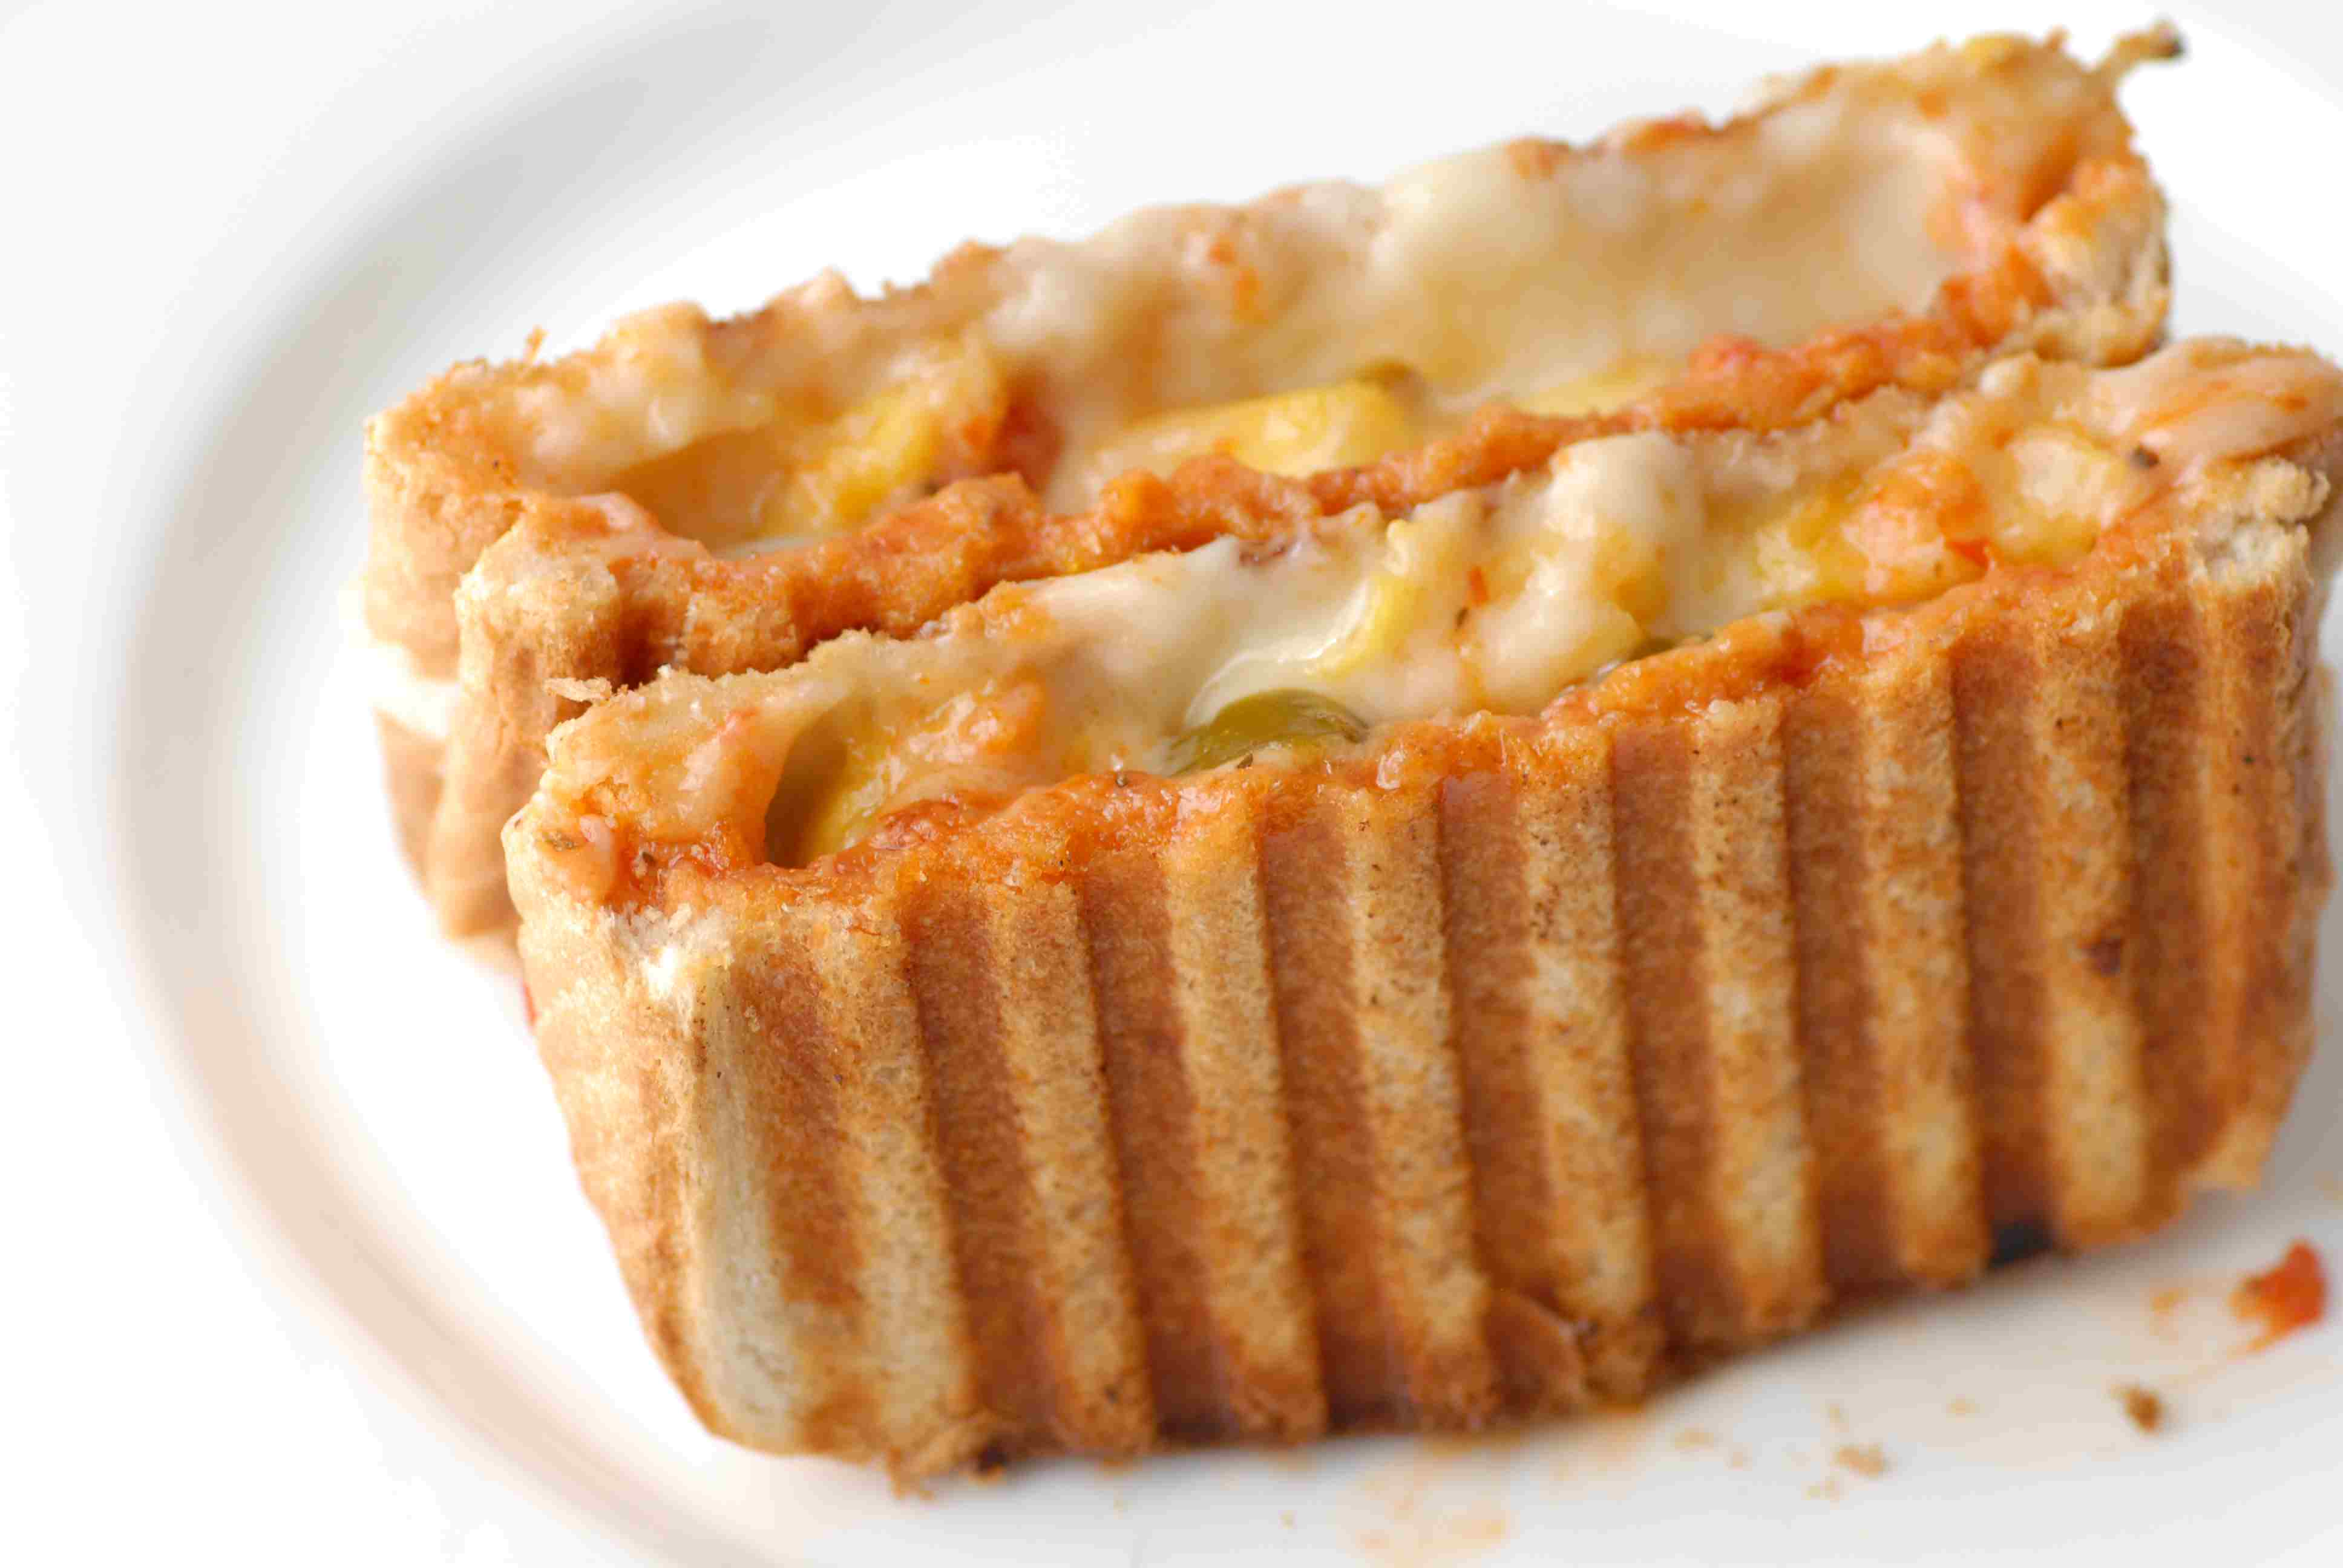 Panini press grilled cheese sandwich on a plate